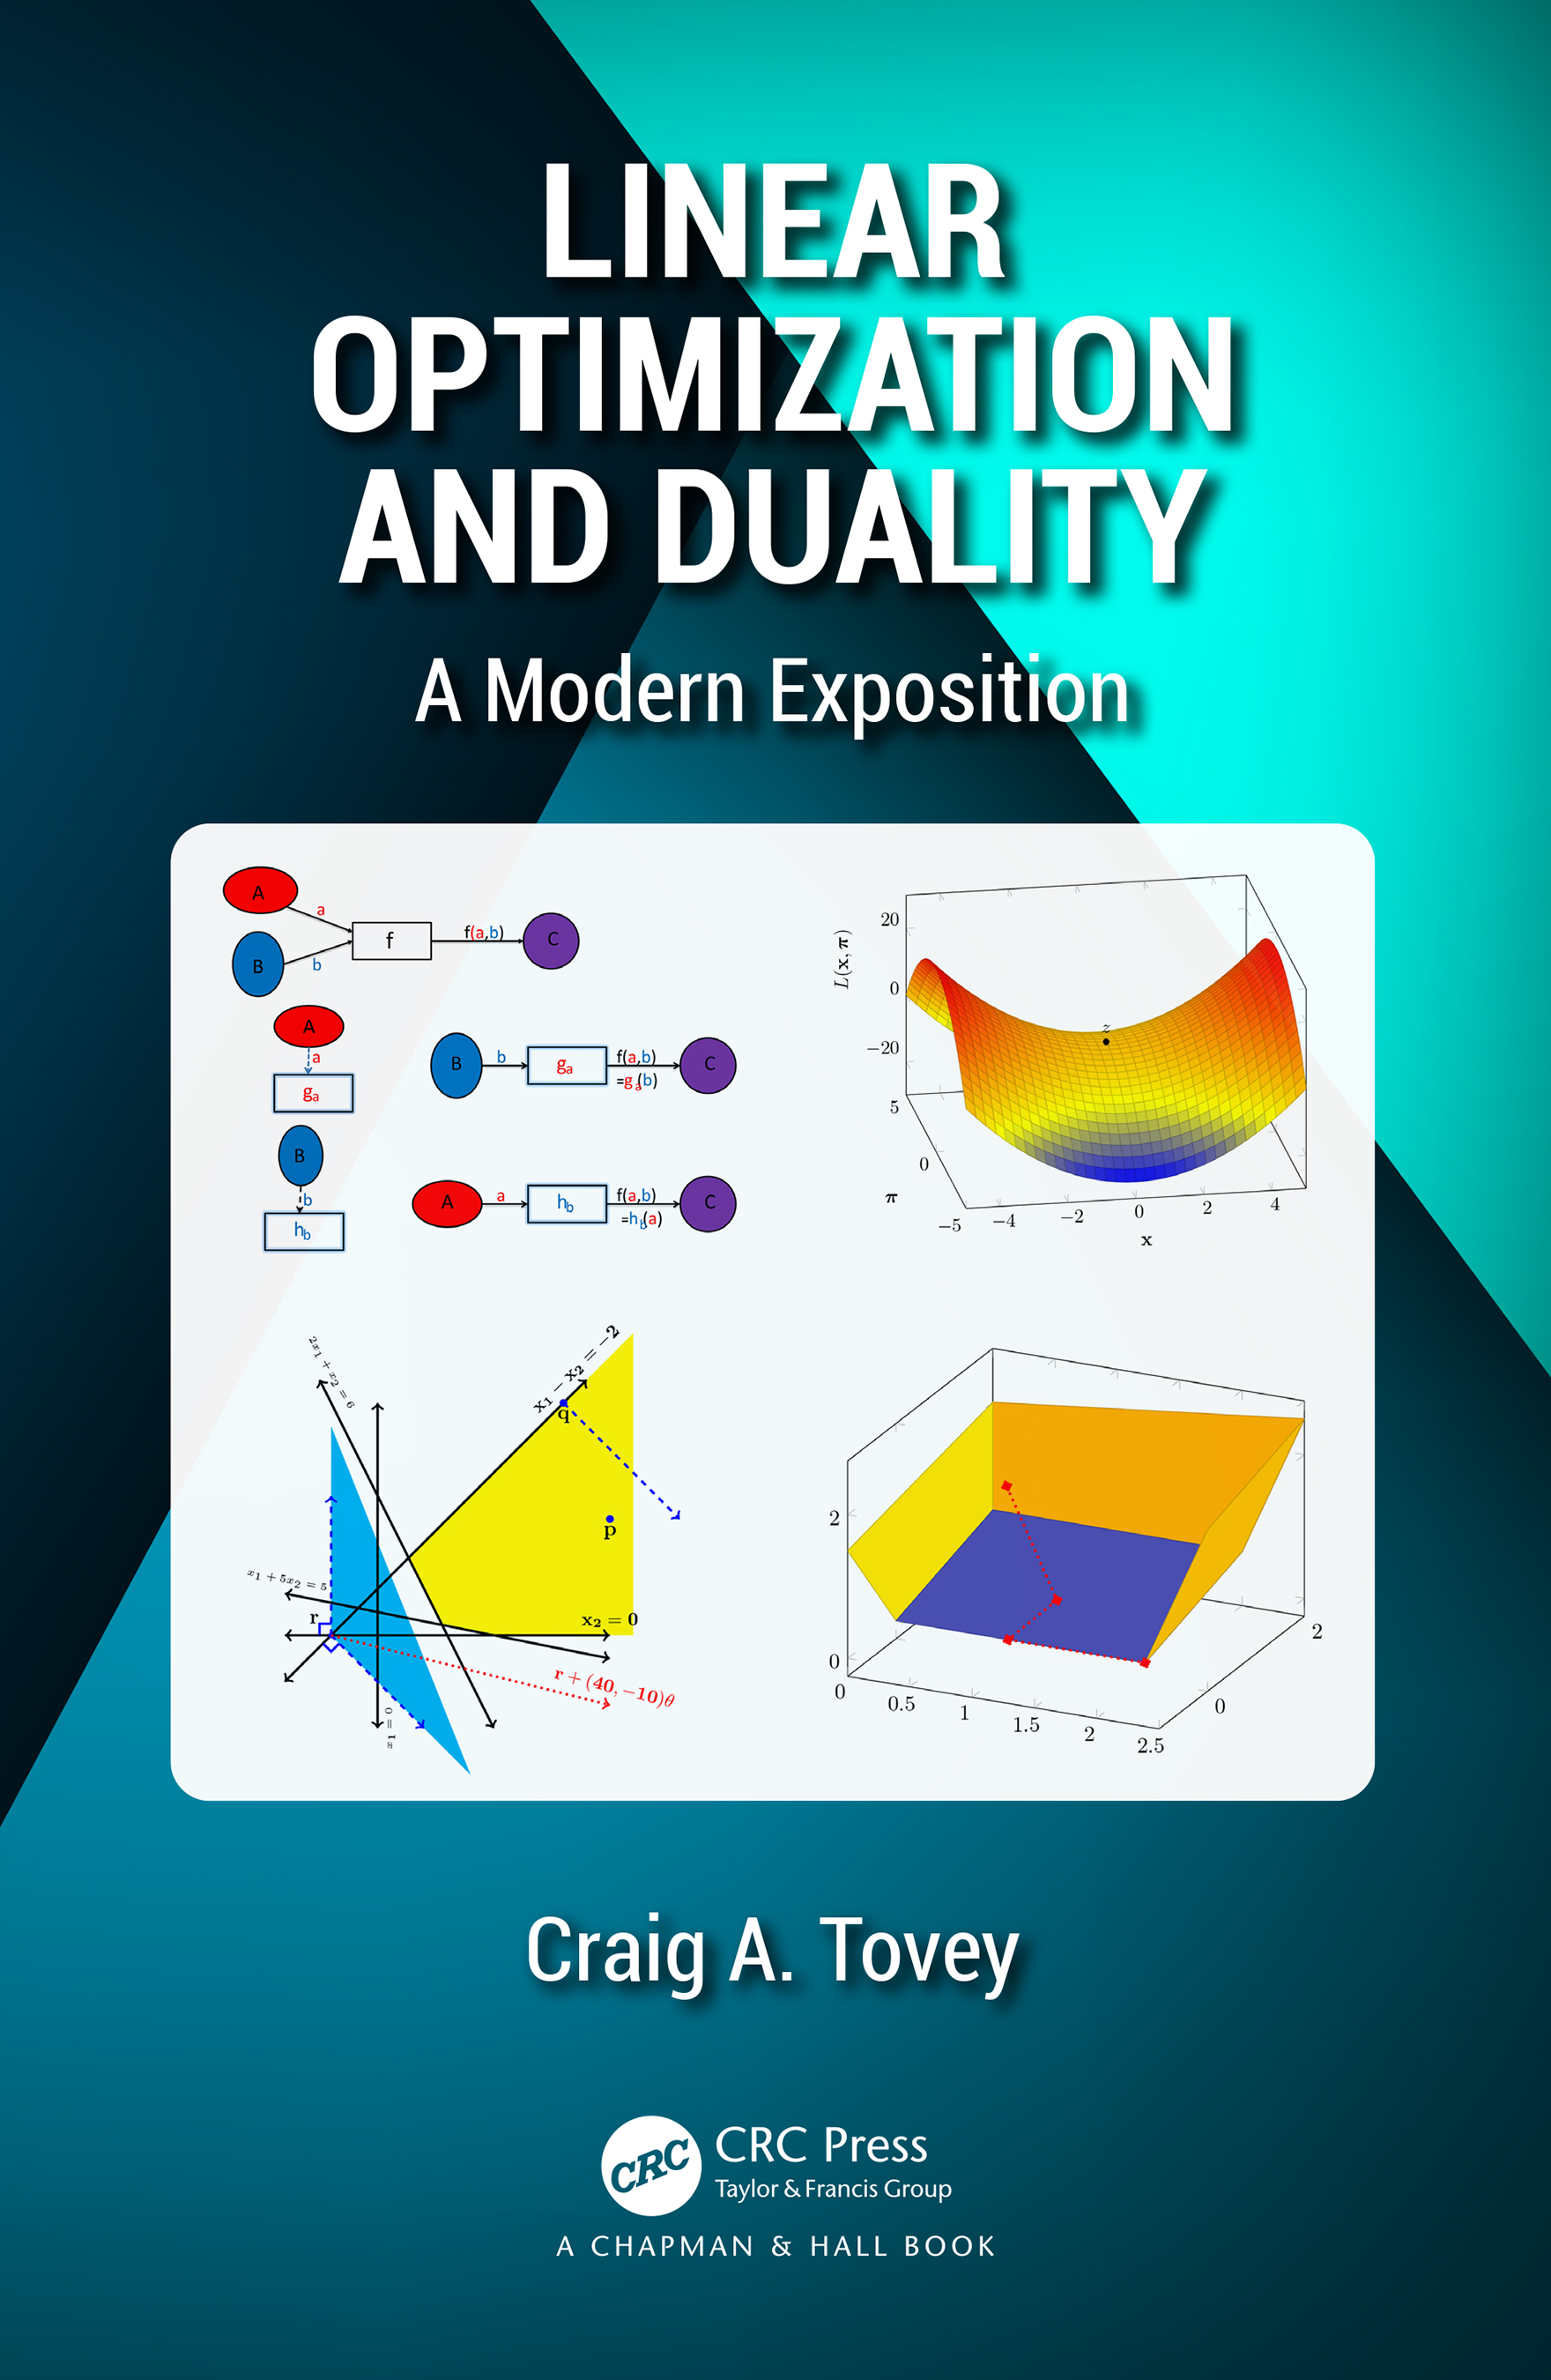 Linear Optimization and Duality